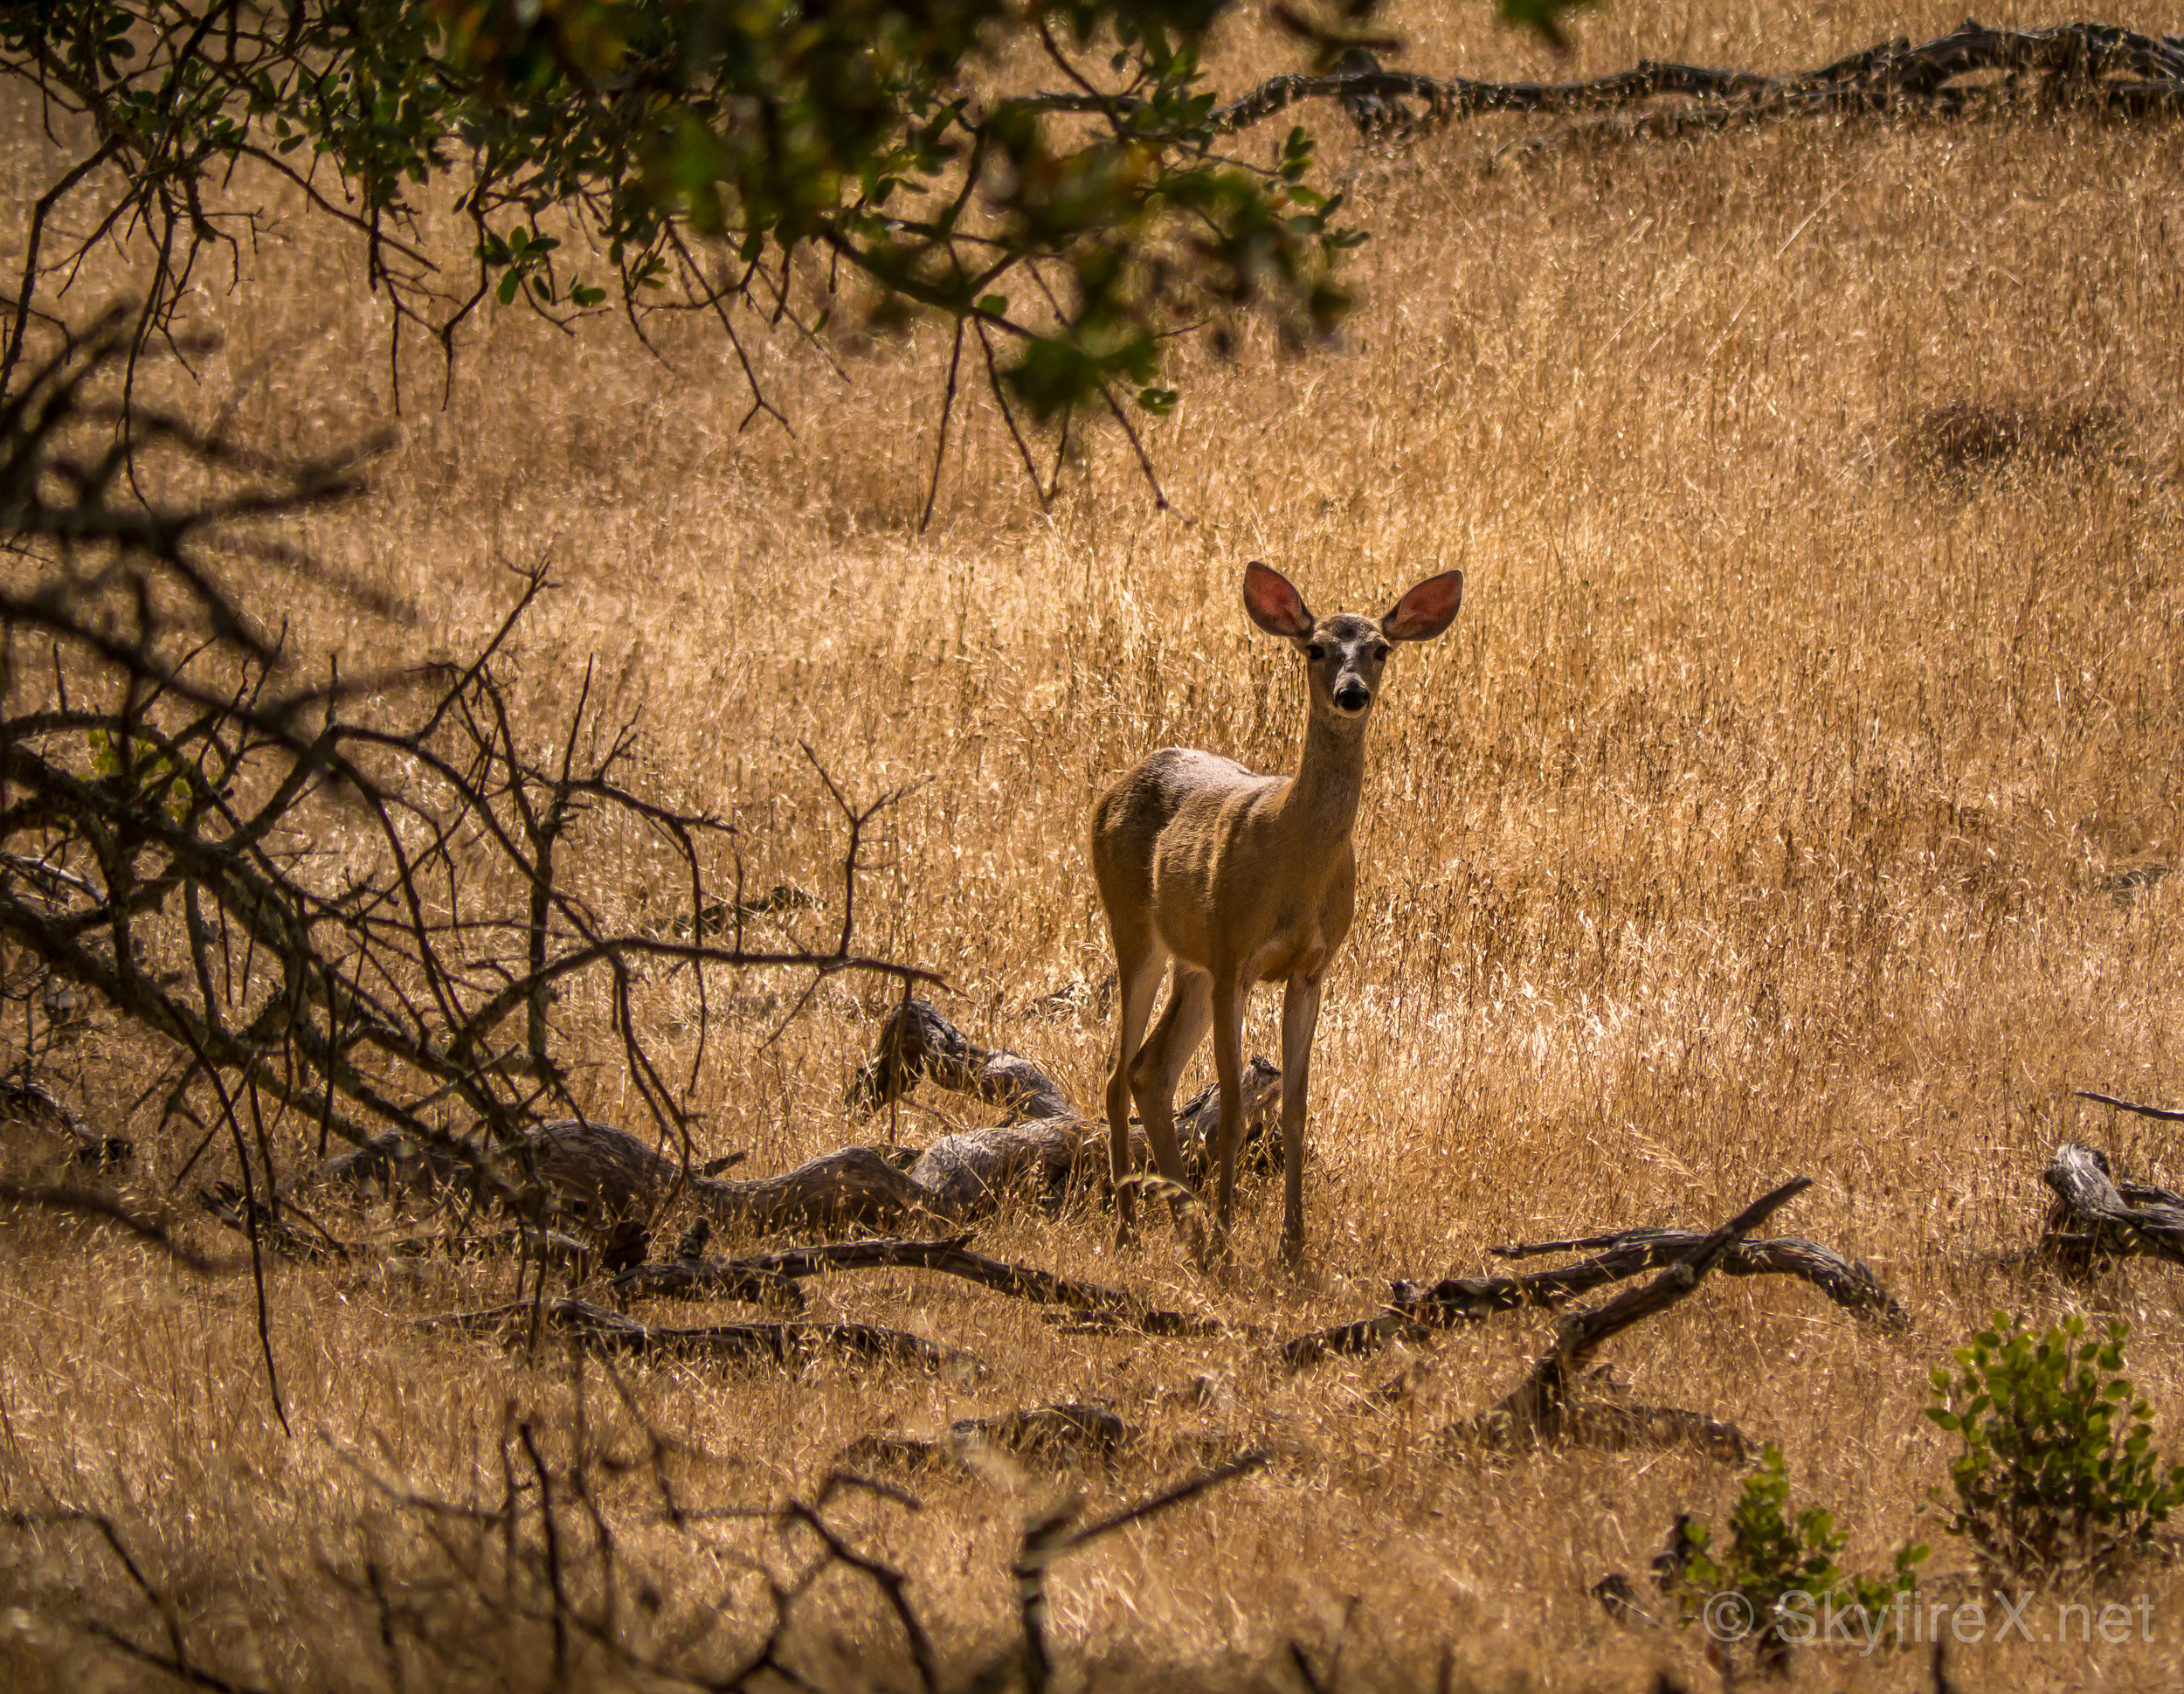 This one stood there a few moments and then followed the other deer into the trees.